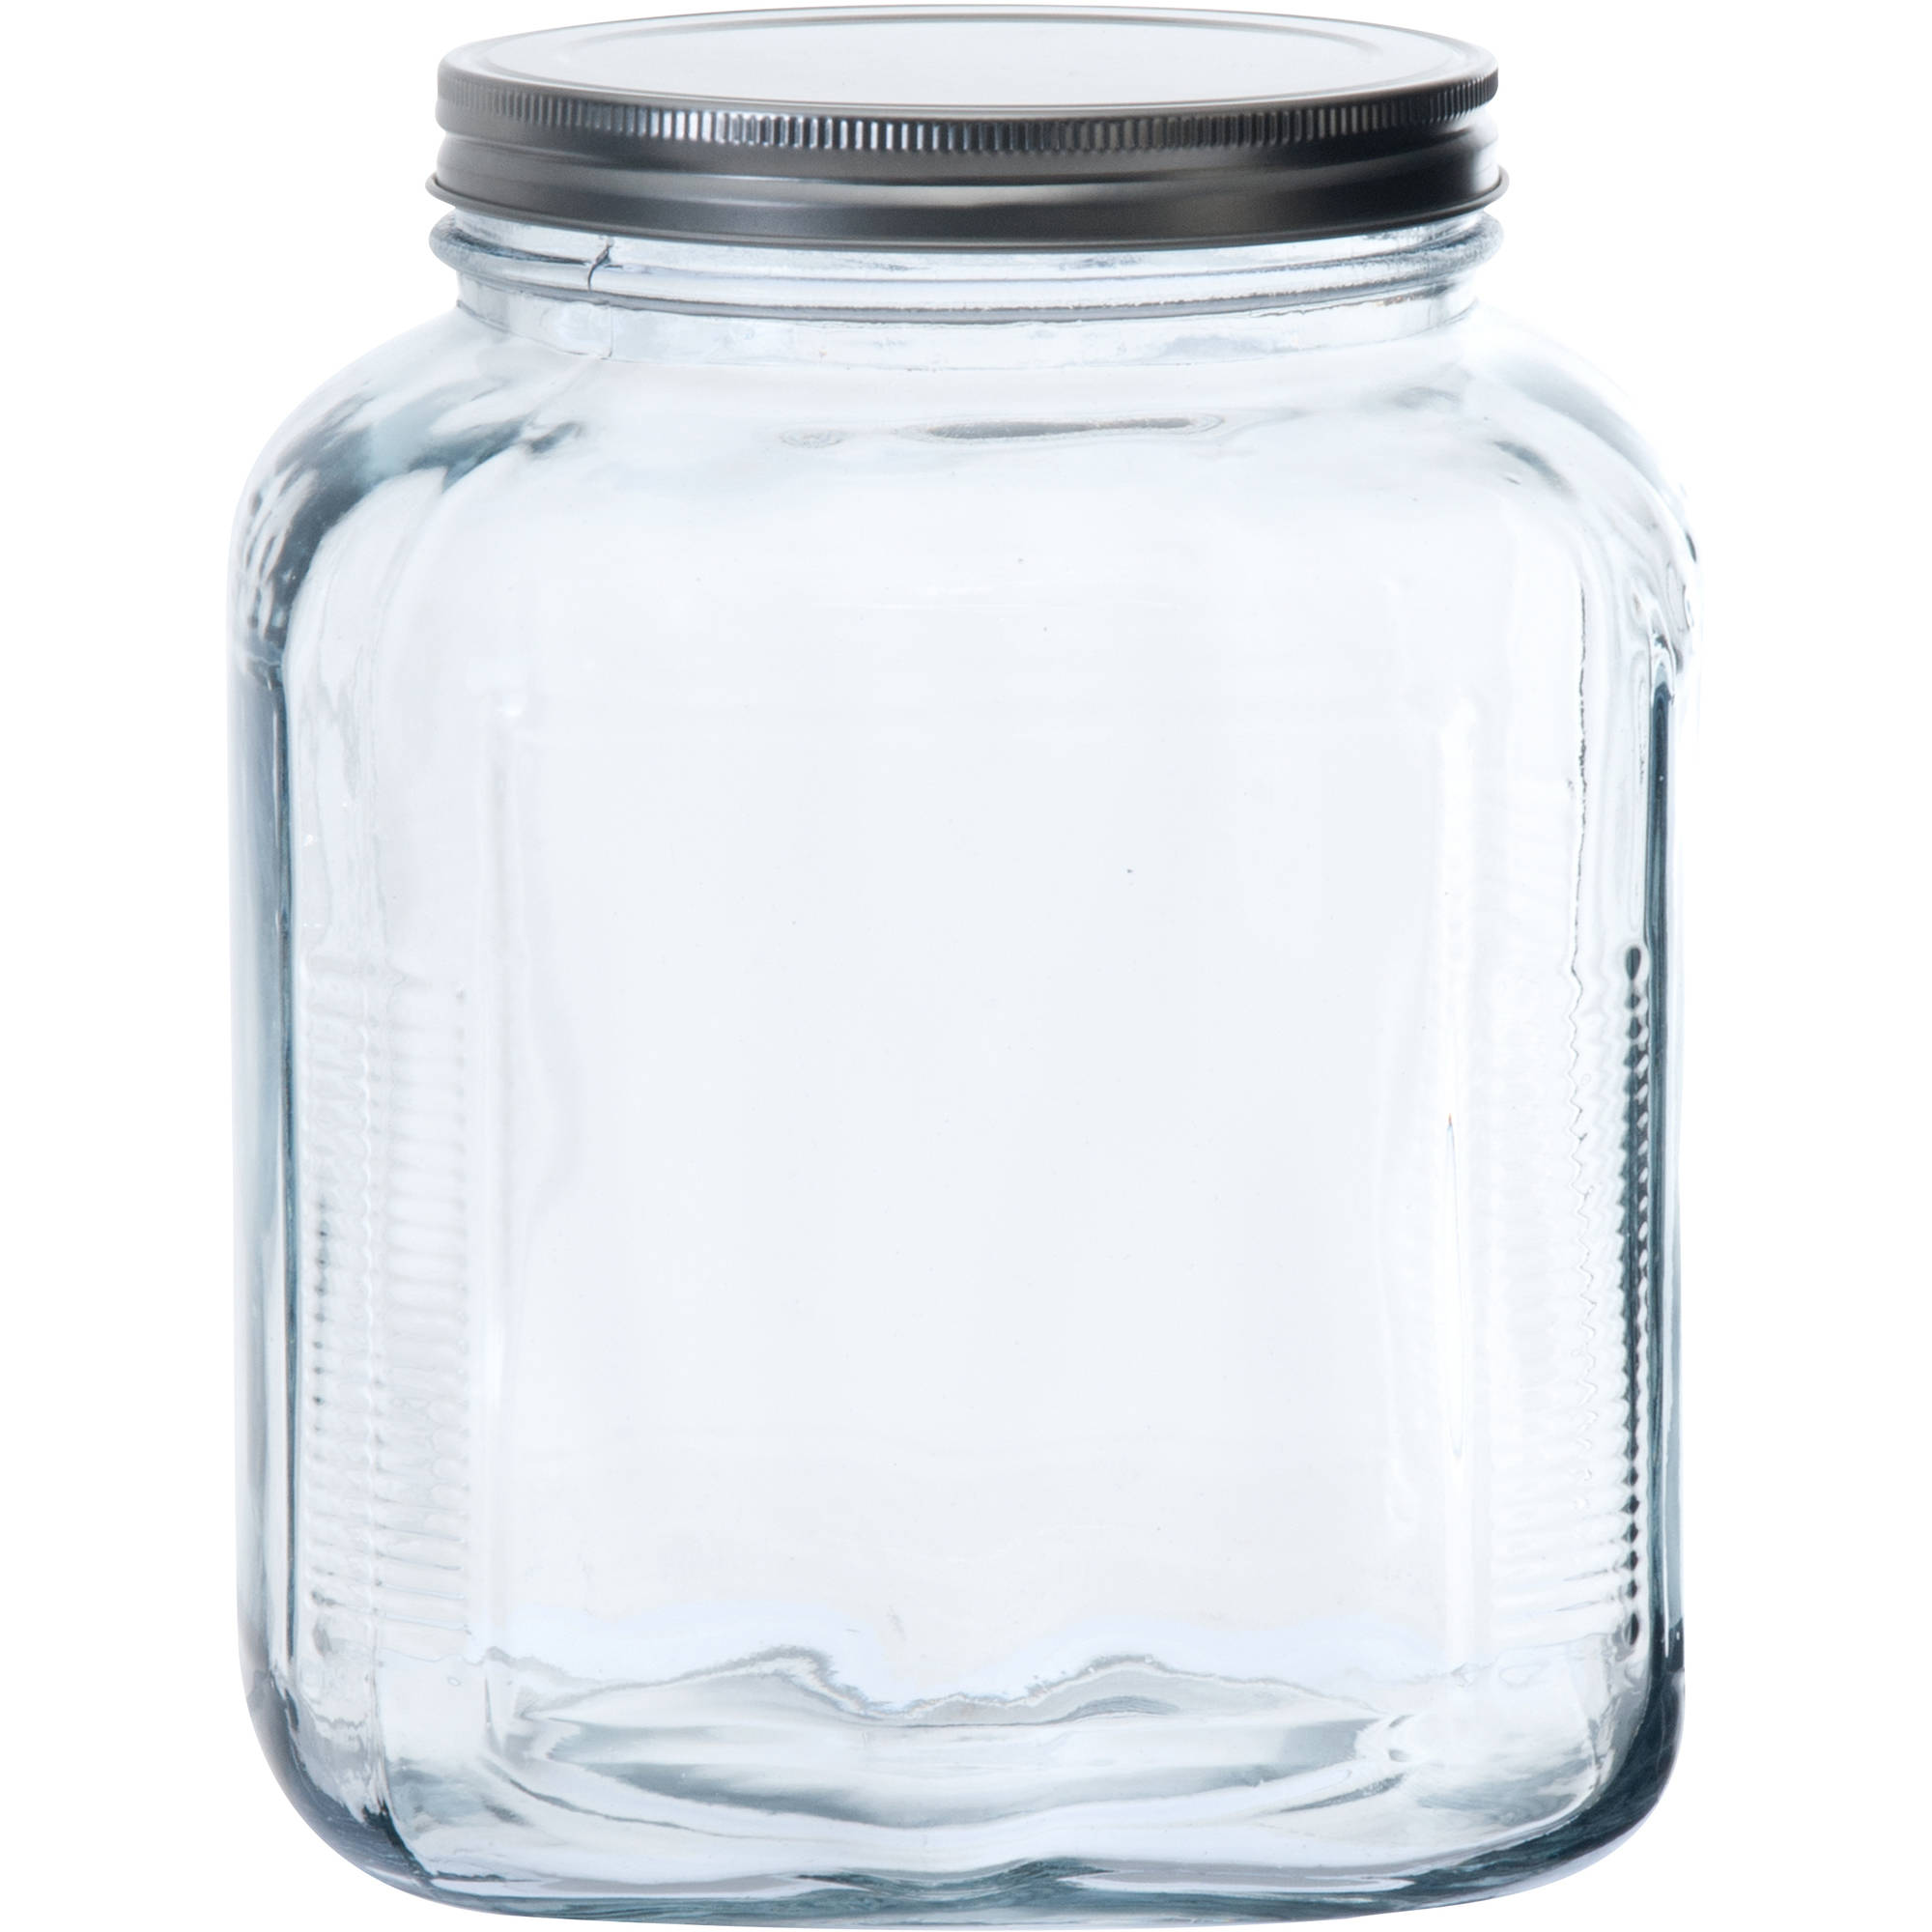 Anchor Hocking 1 Gallon Cracker Jar Walmart Com